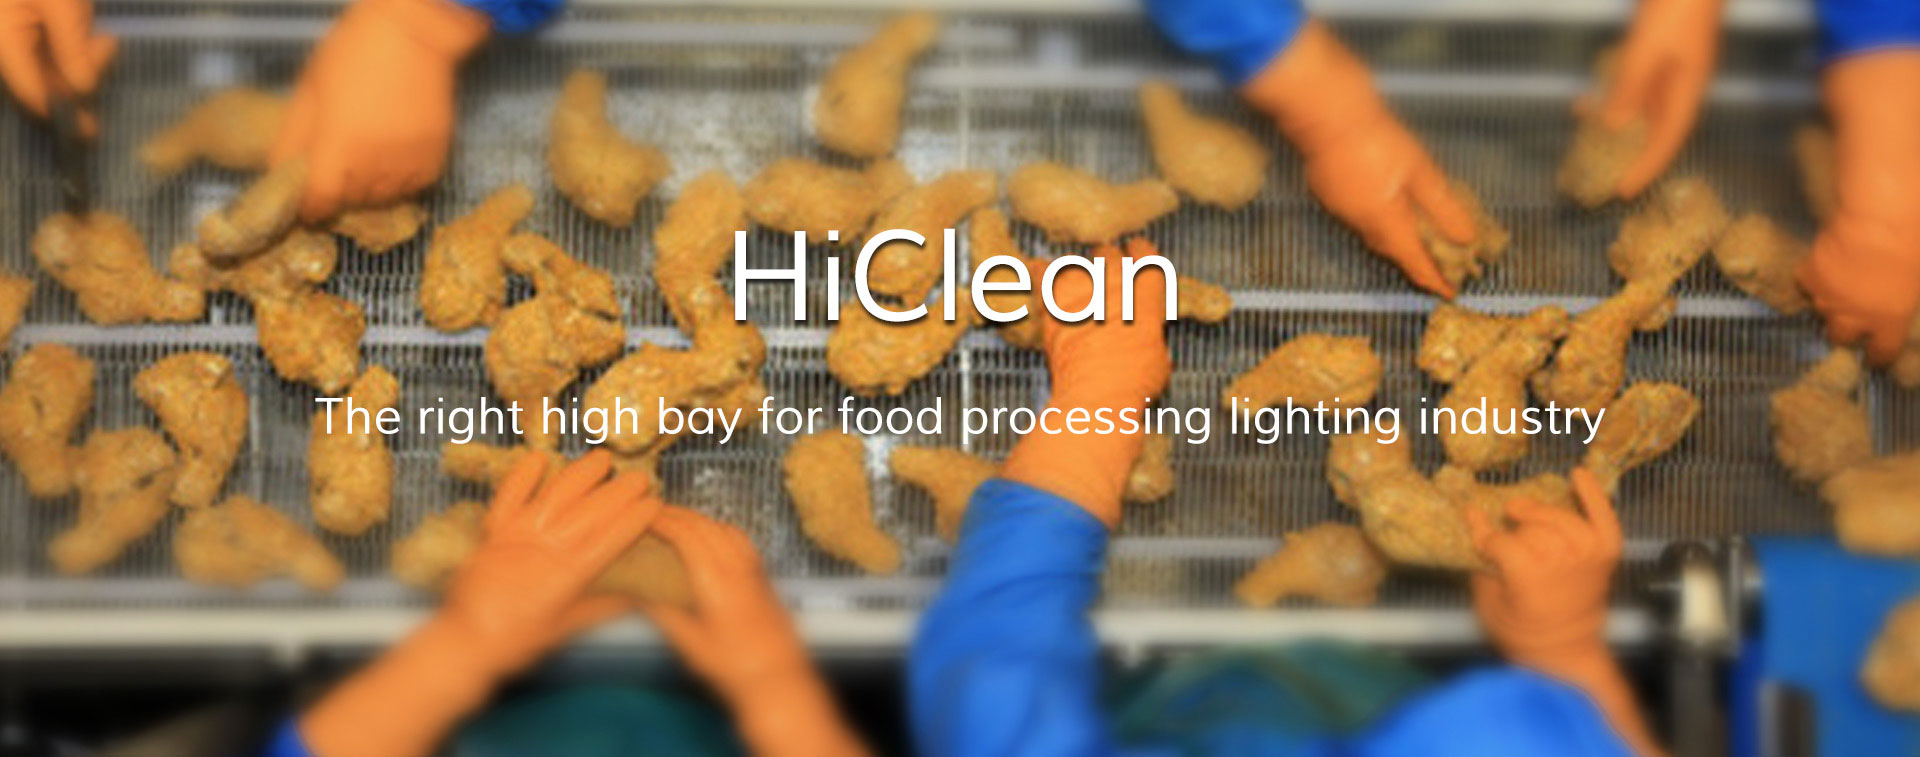 HiClean LED high bay for food processing